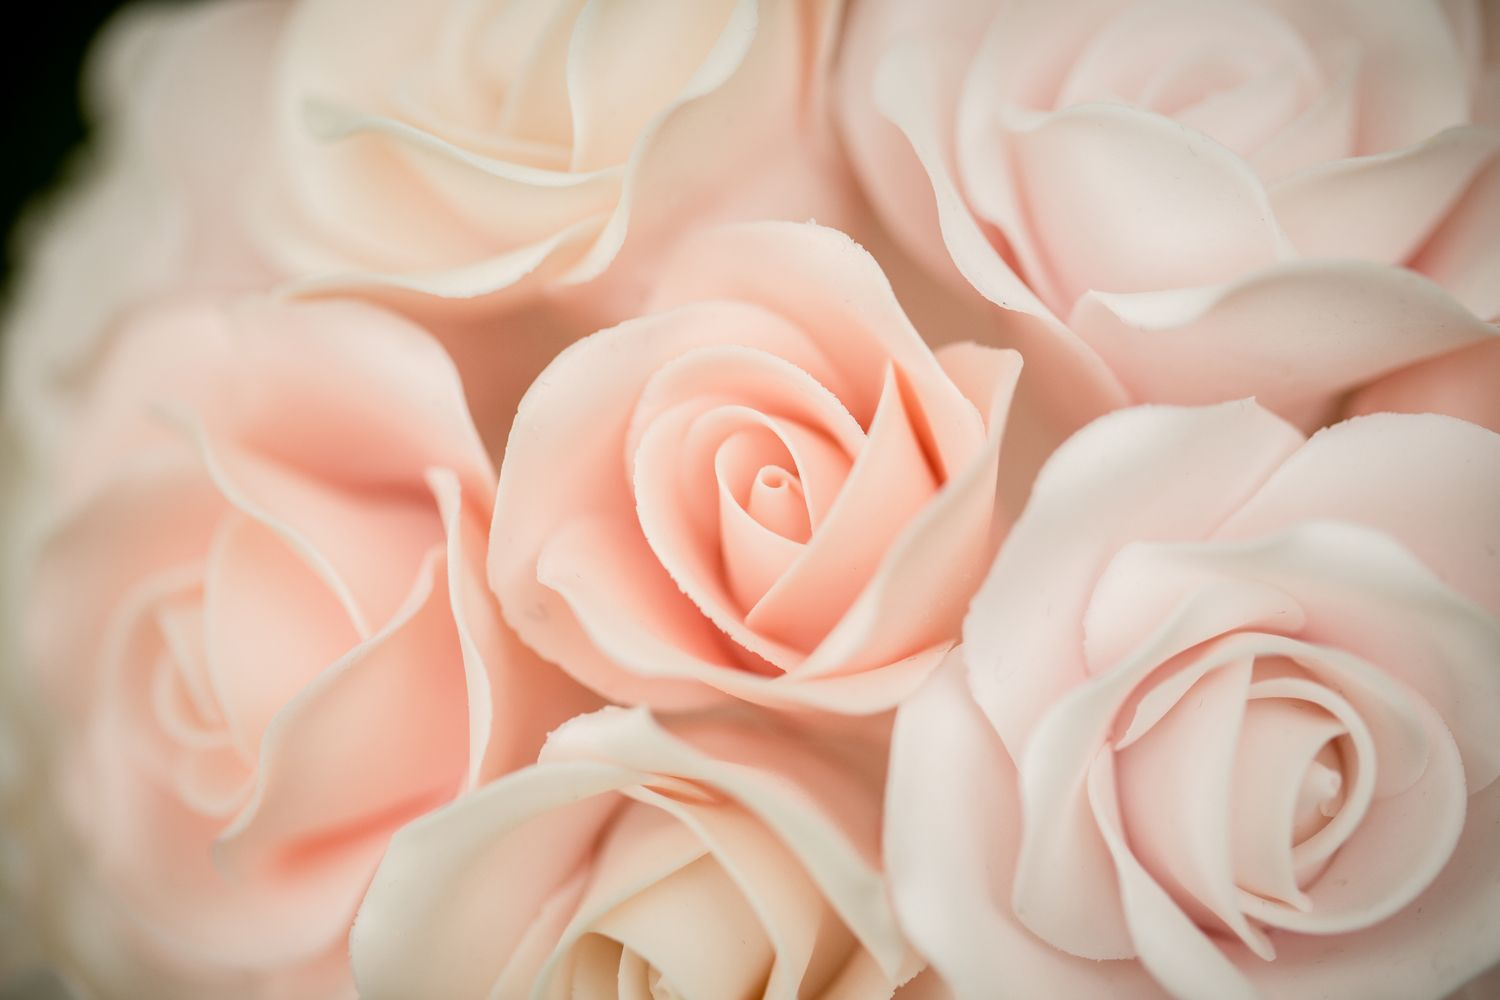 Roses || Photo by Eppel Fotografie